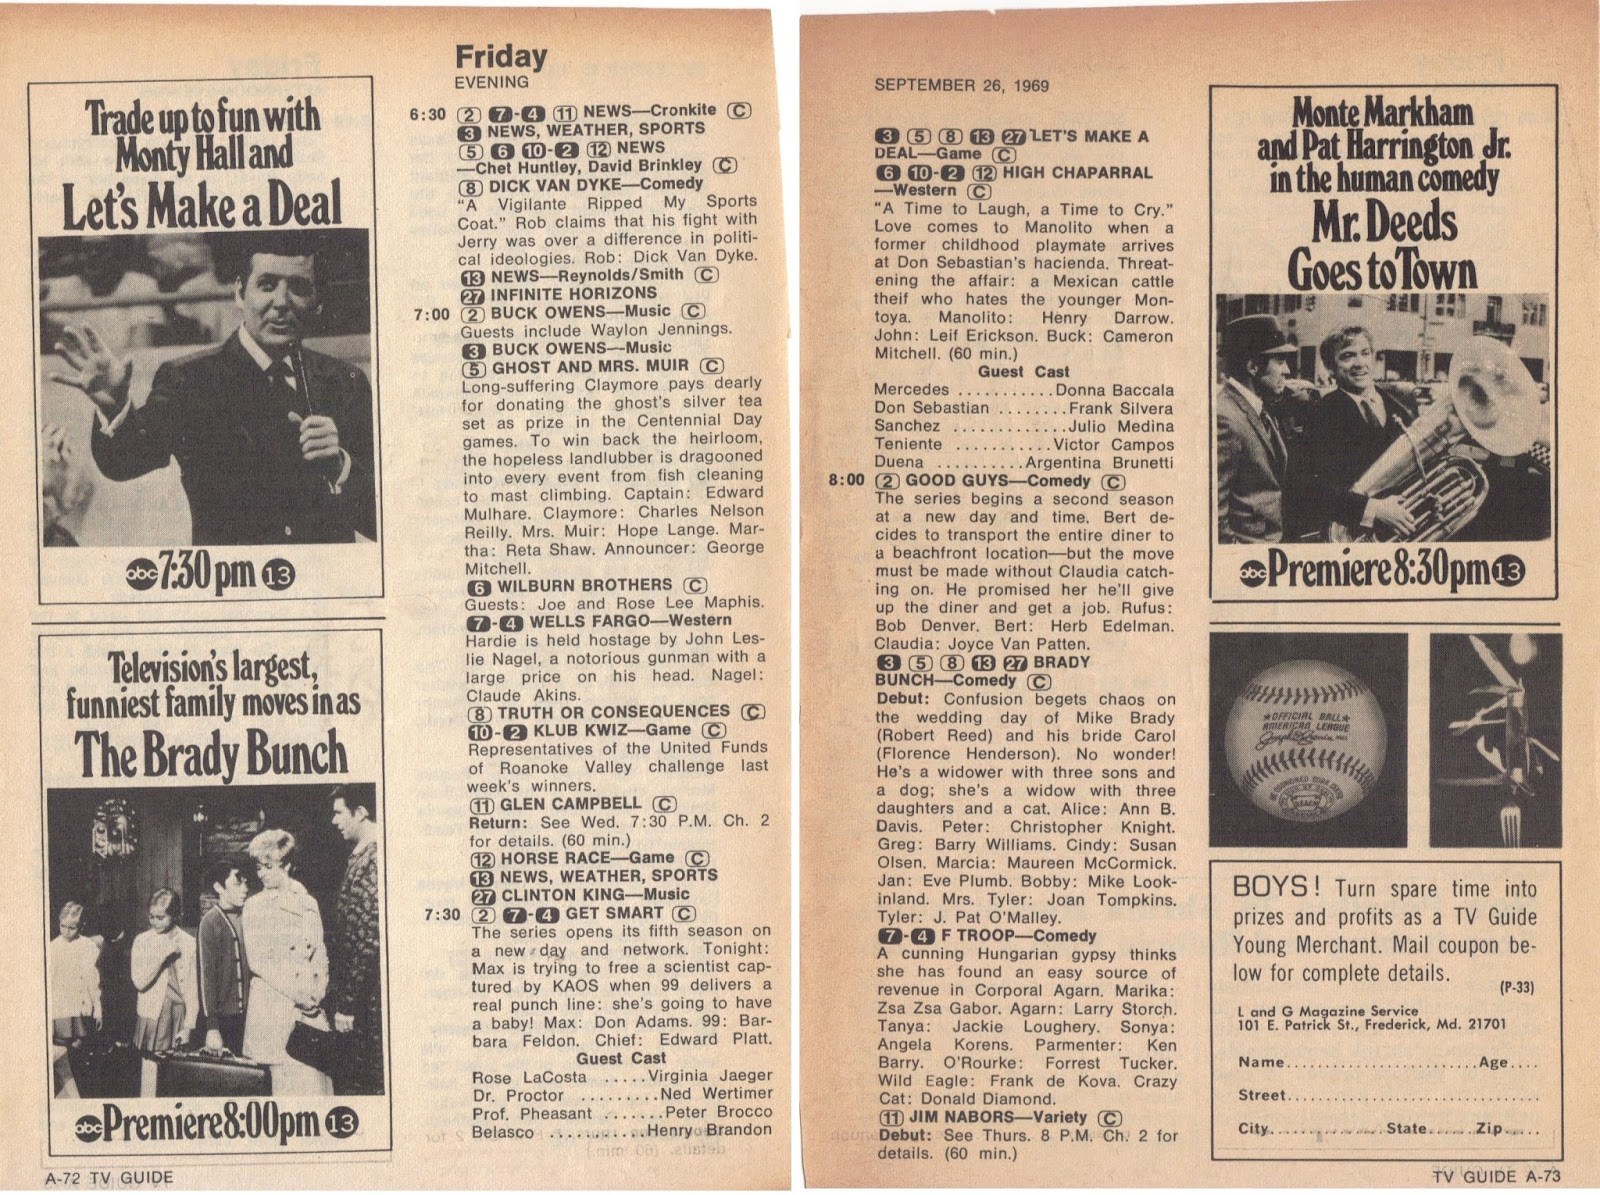 the brady bunch blog: friday night tv guide in 1969